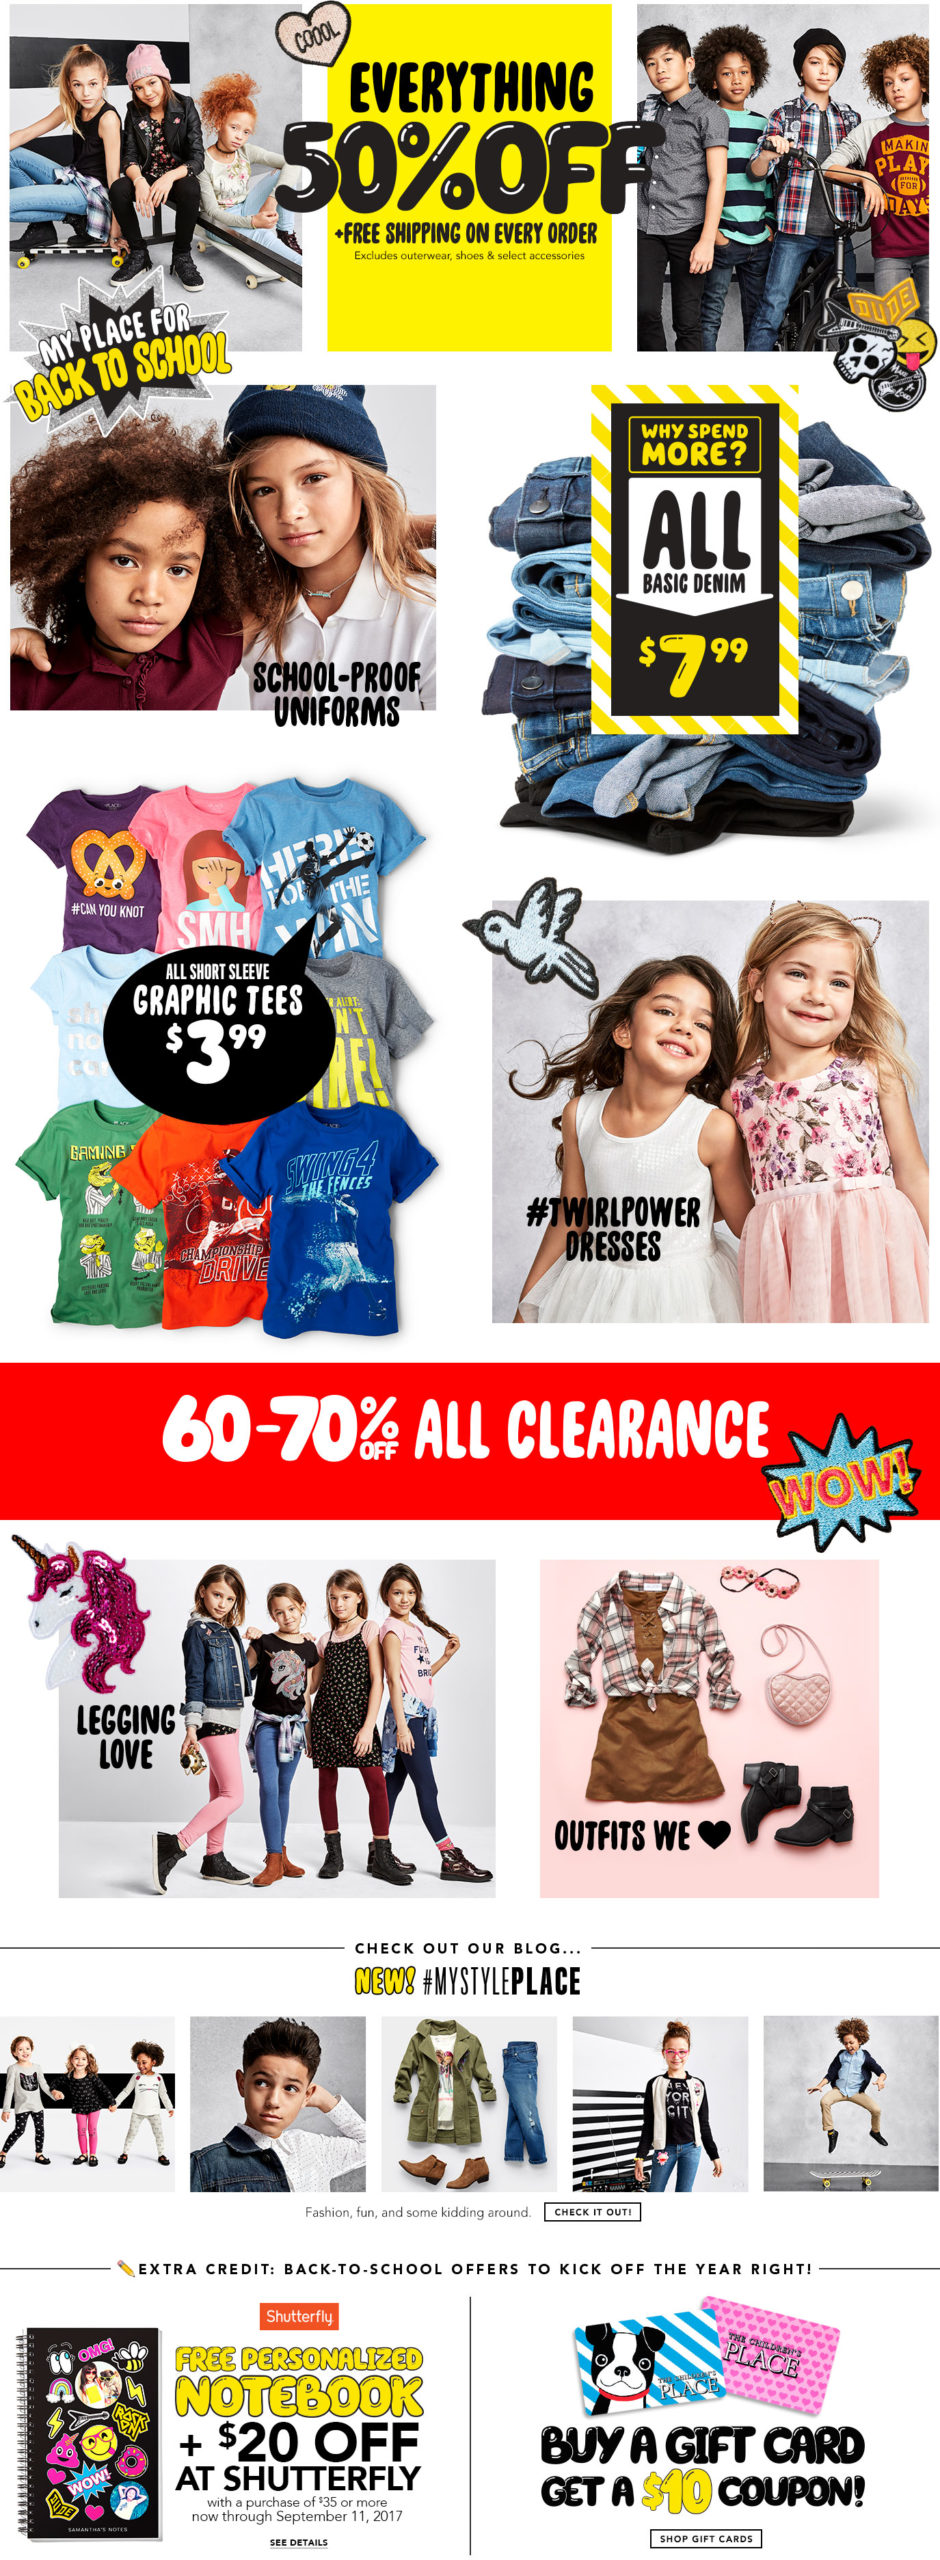 *HOT* The Children's Place – 50% off Sitewide + Free Shipping